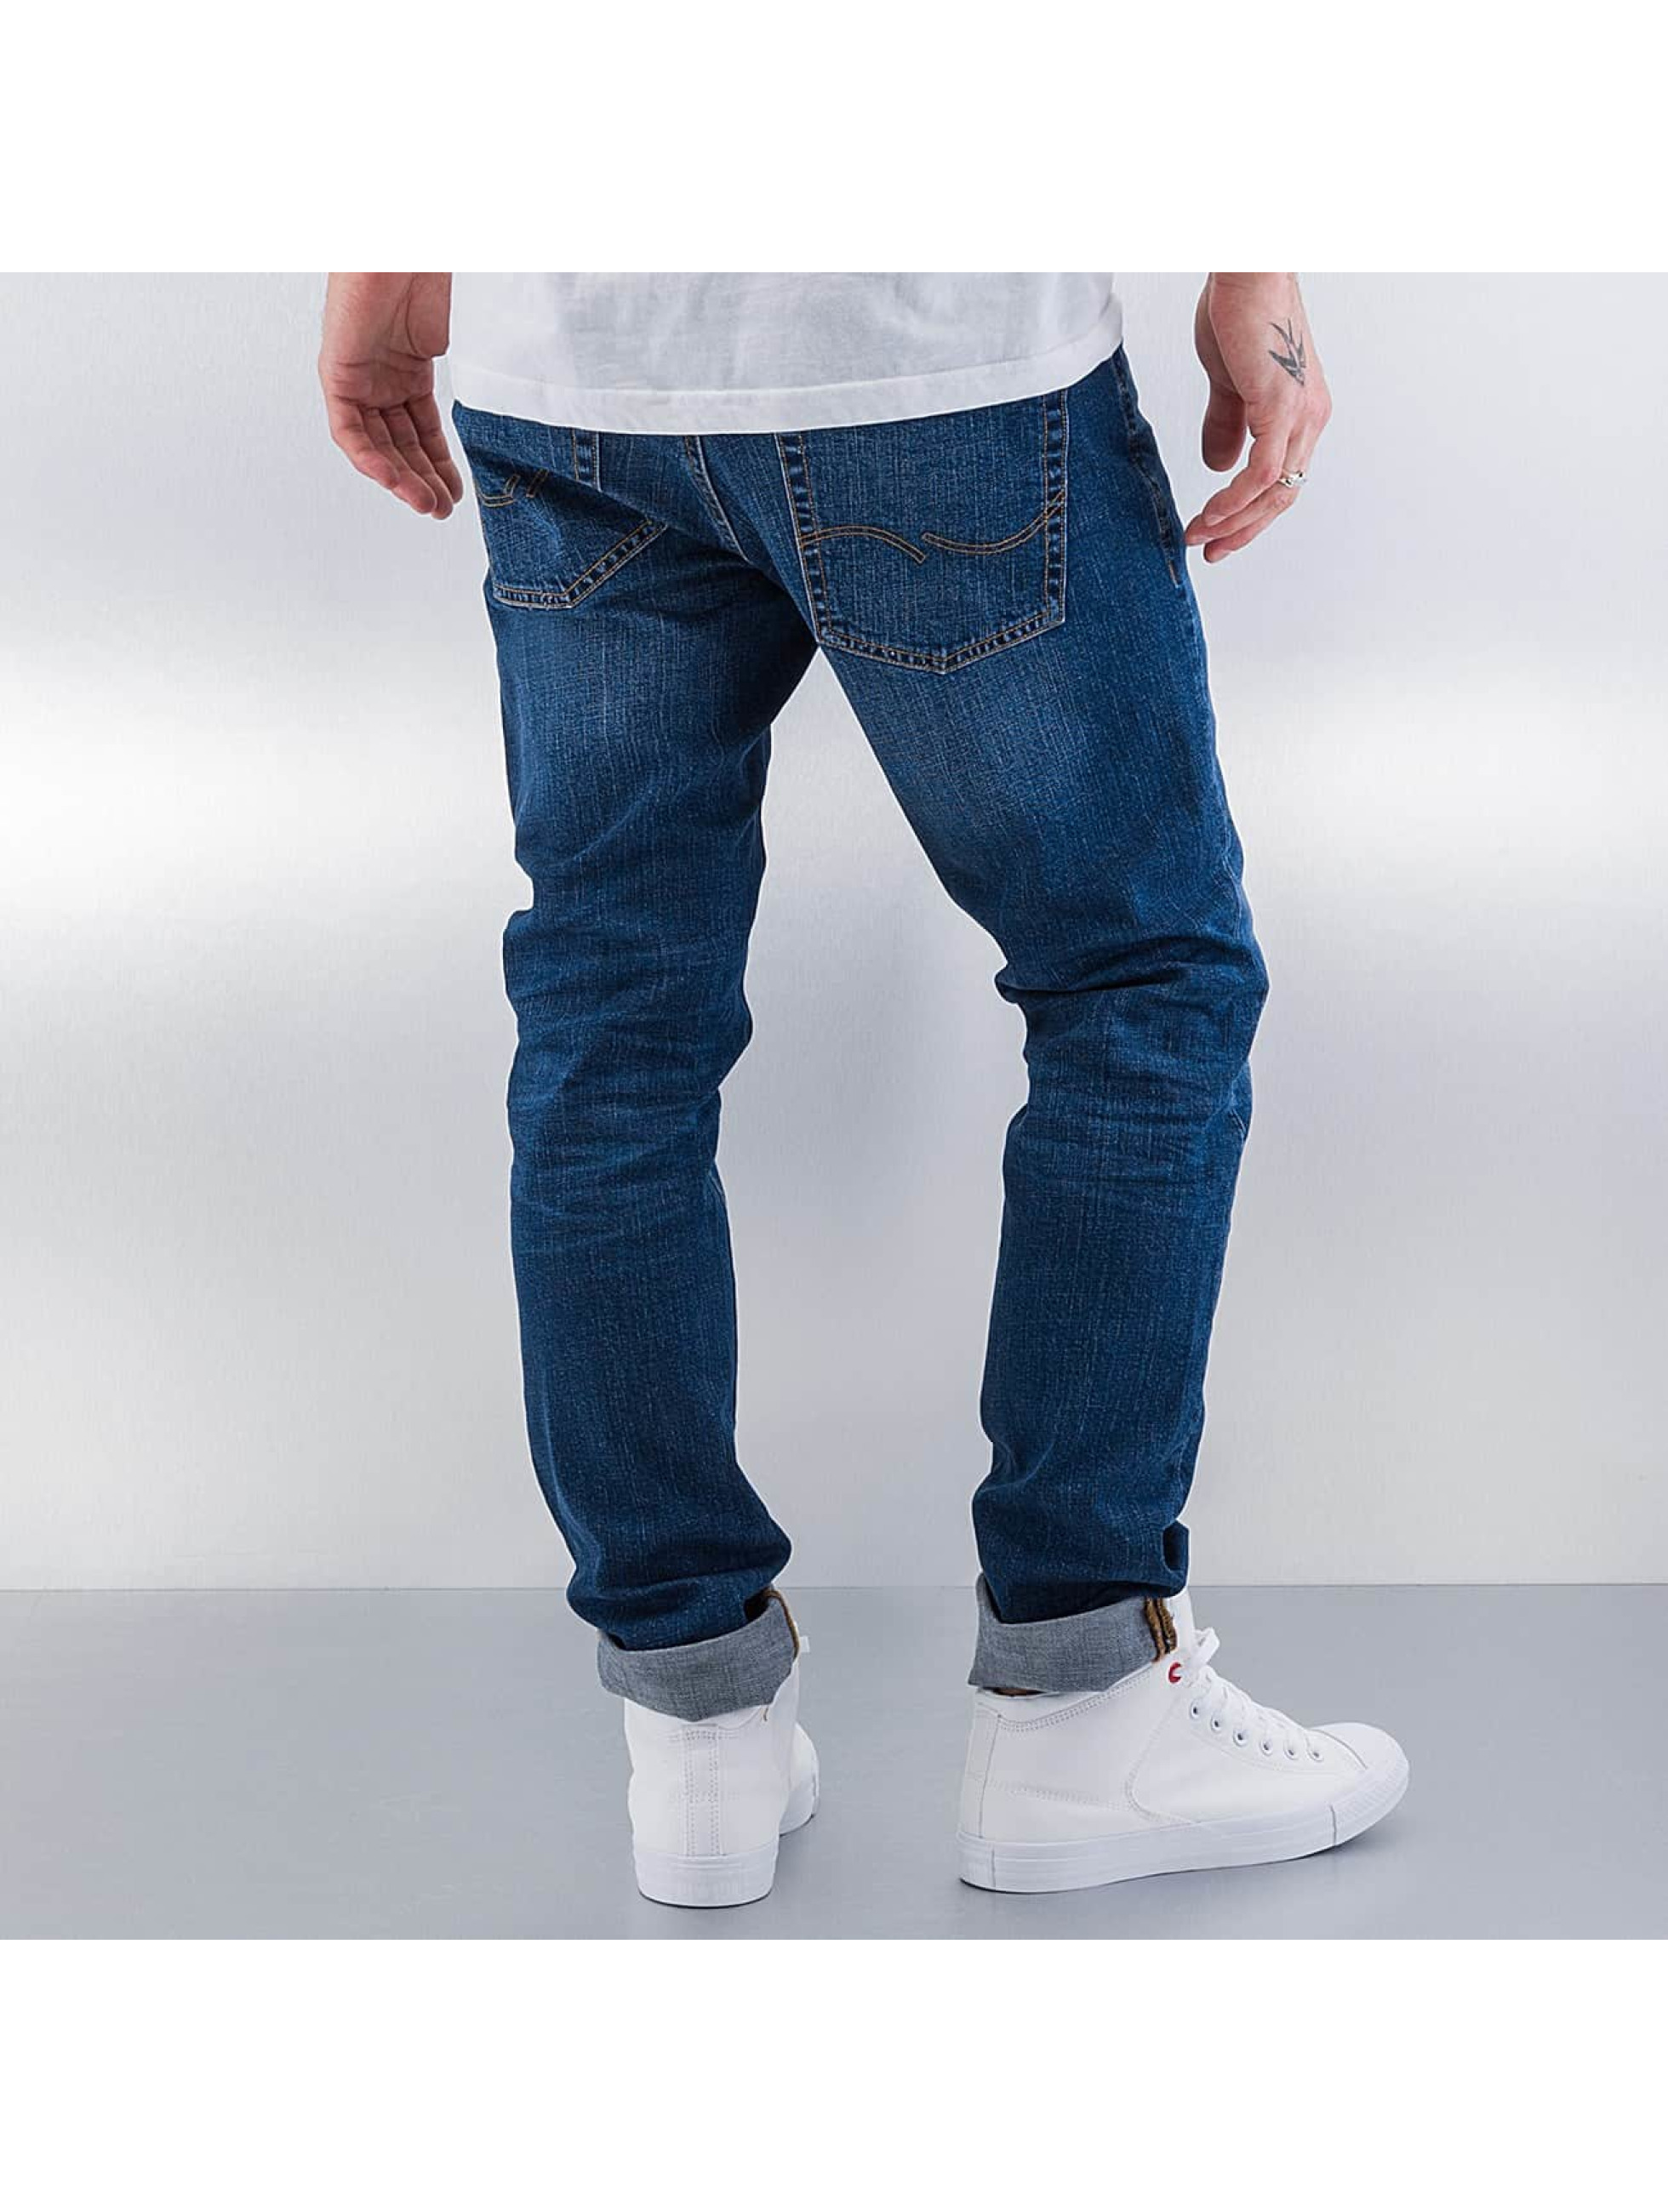 Jack & Jones Skinny Jeans jjiTim jjOriginal blue